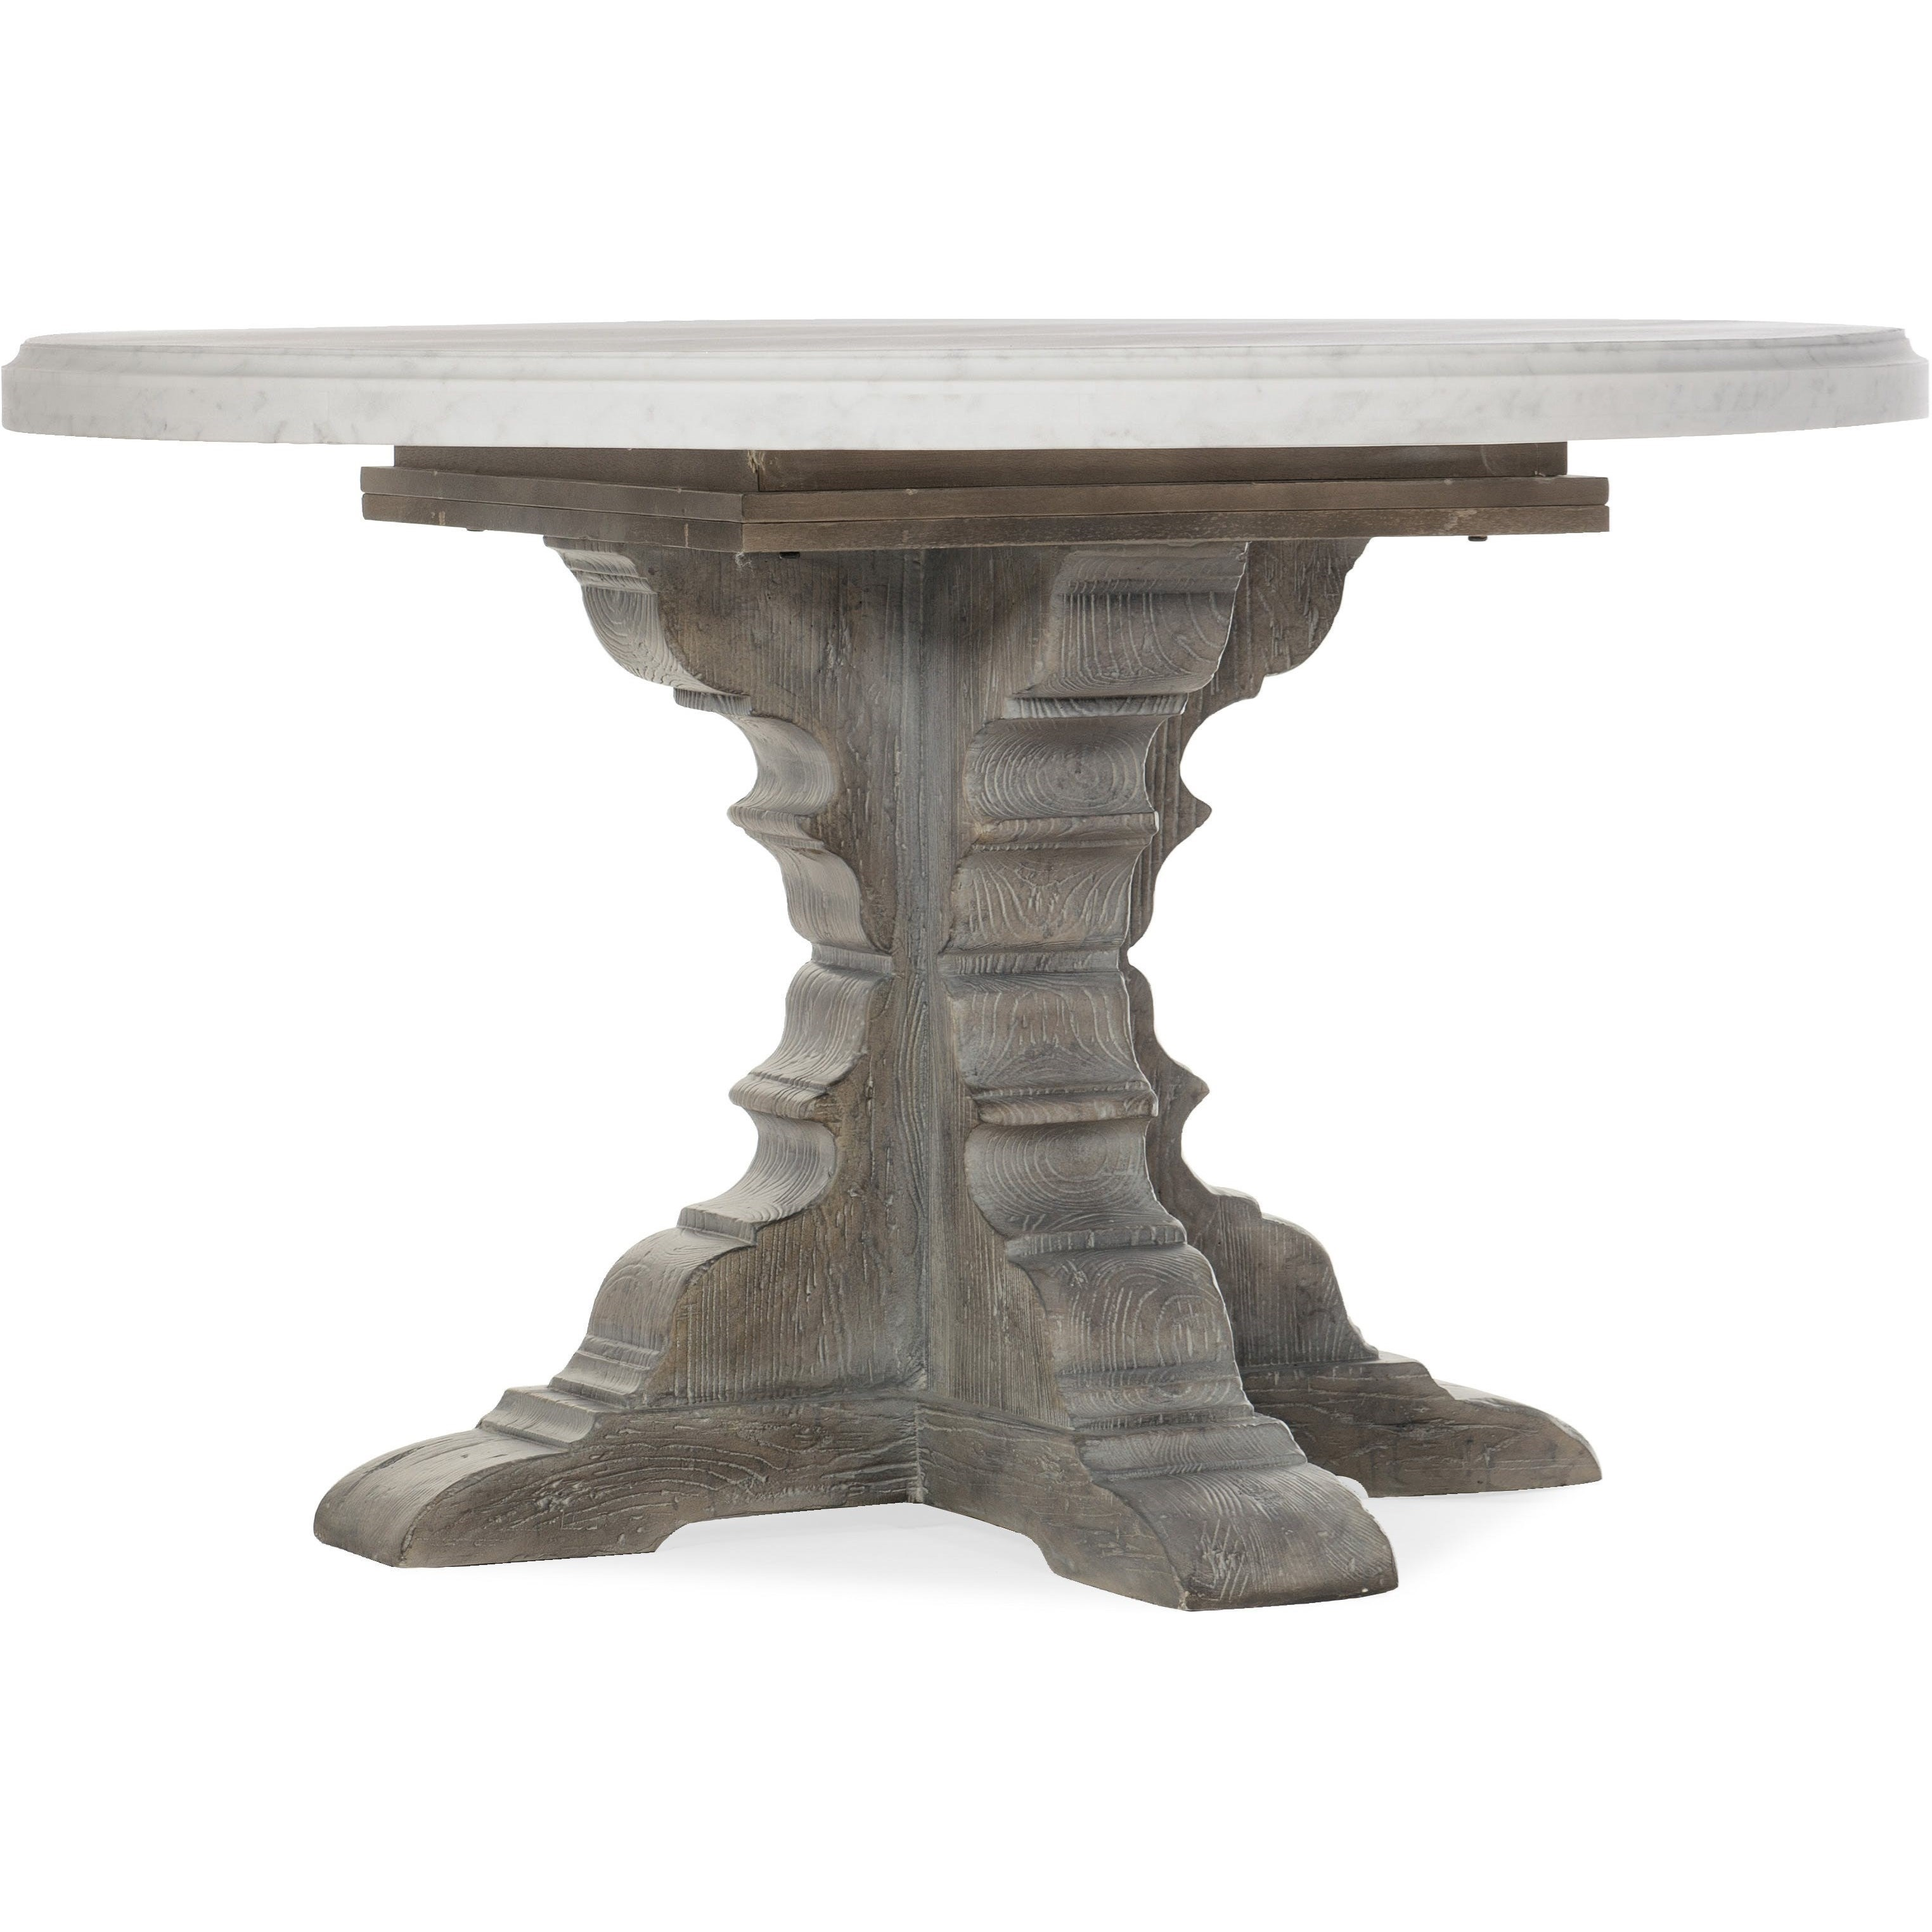 Beaumont Round Dining Table with 48in Marble Top by Hooker Furniture at Alison Craig Home Furnishings